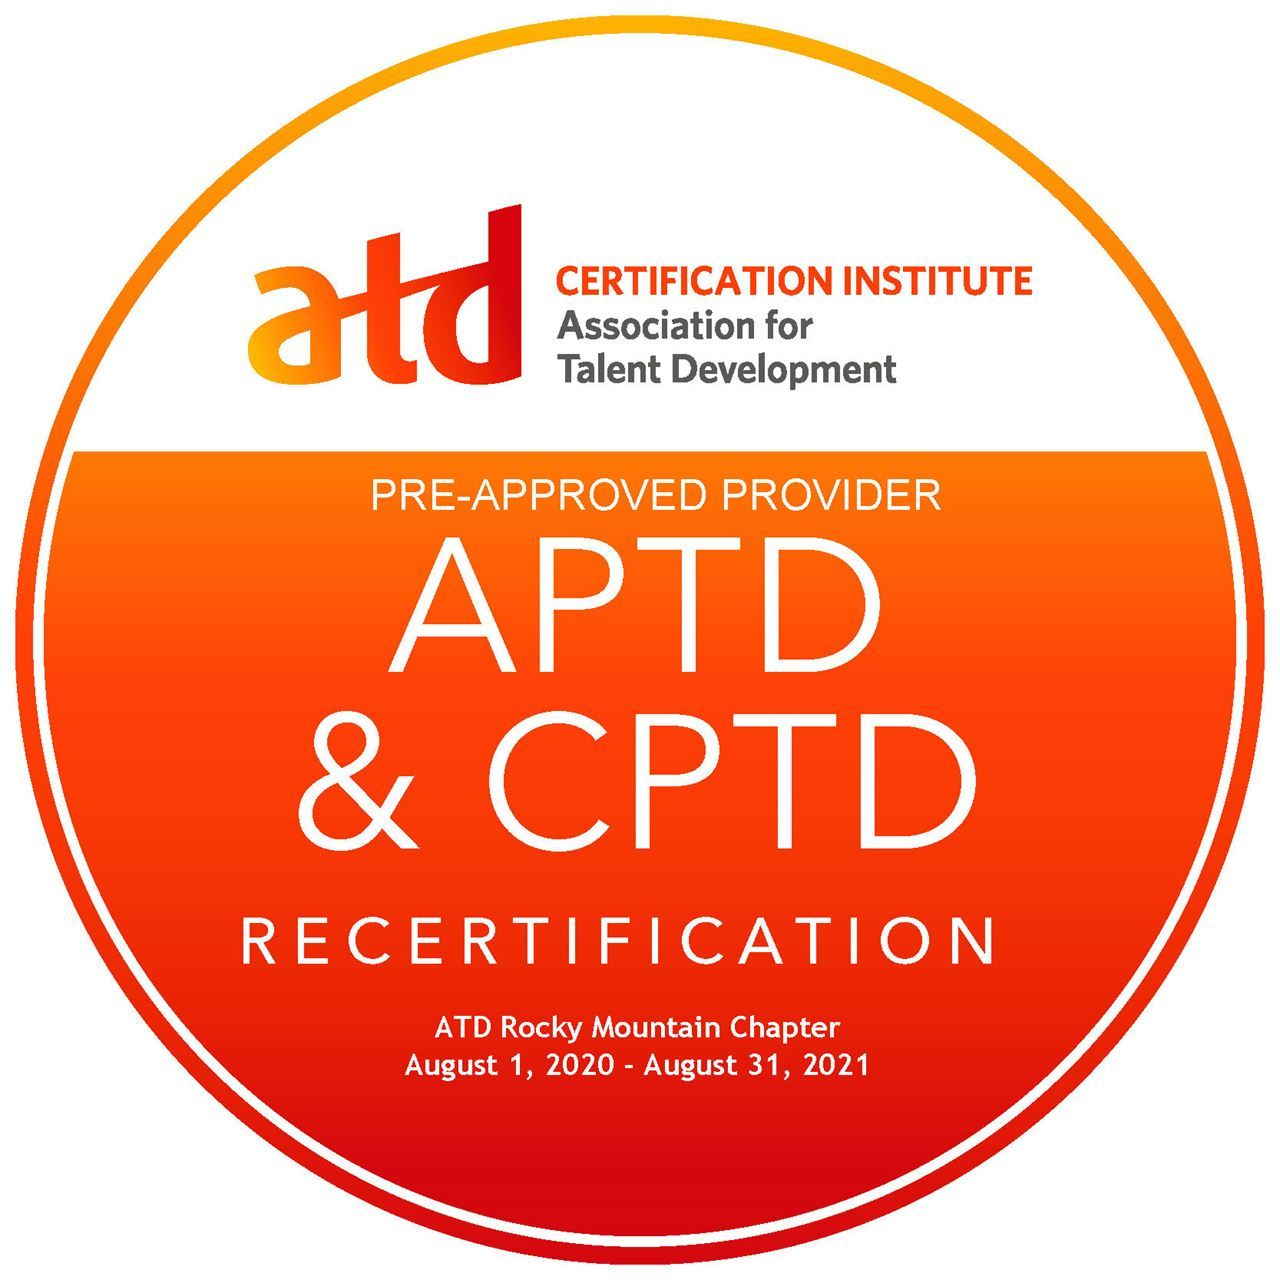 ATD CI Pre-Approved APTD & CPTD Pre-Approved Provider for recertification